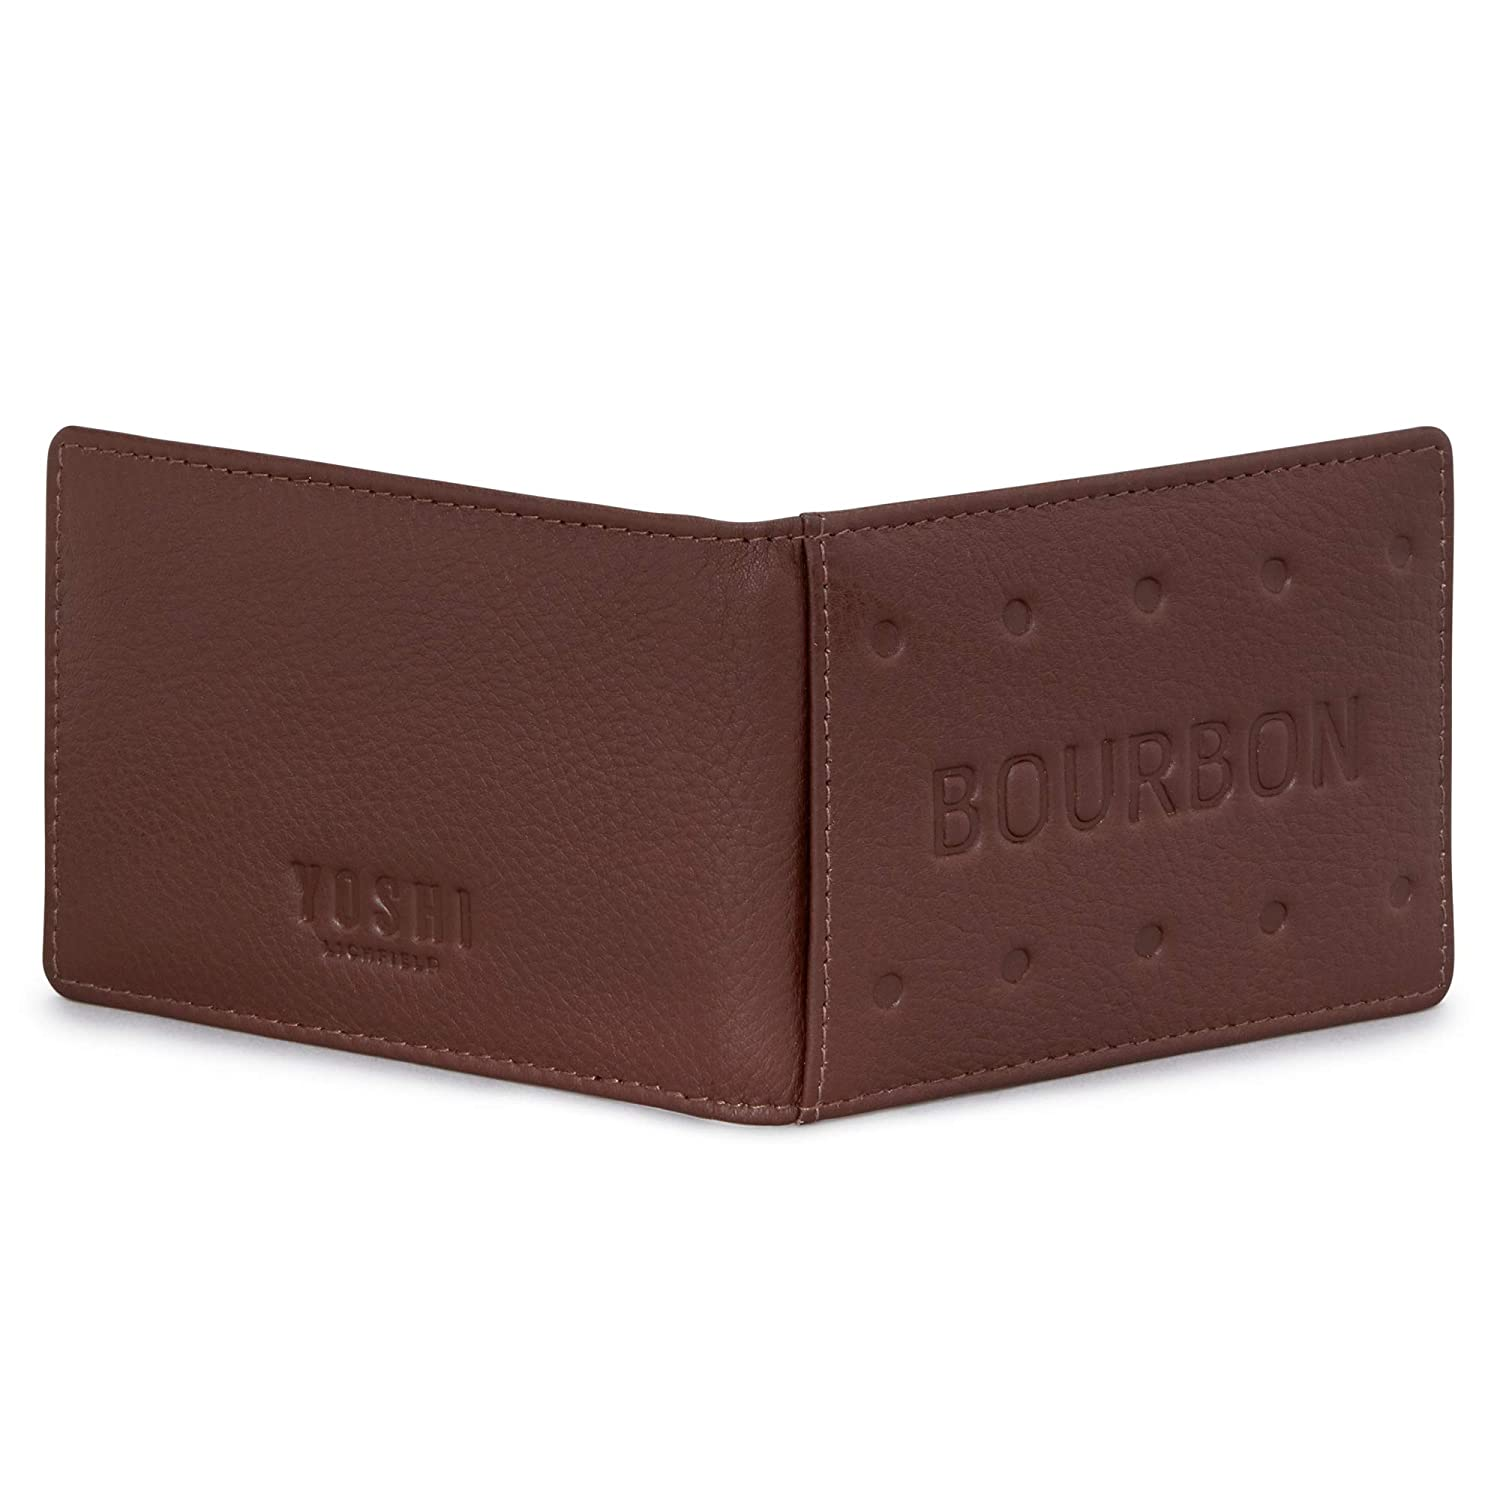 Bourbon Biscuit Leather Travel Pass Holder by Yoshi